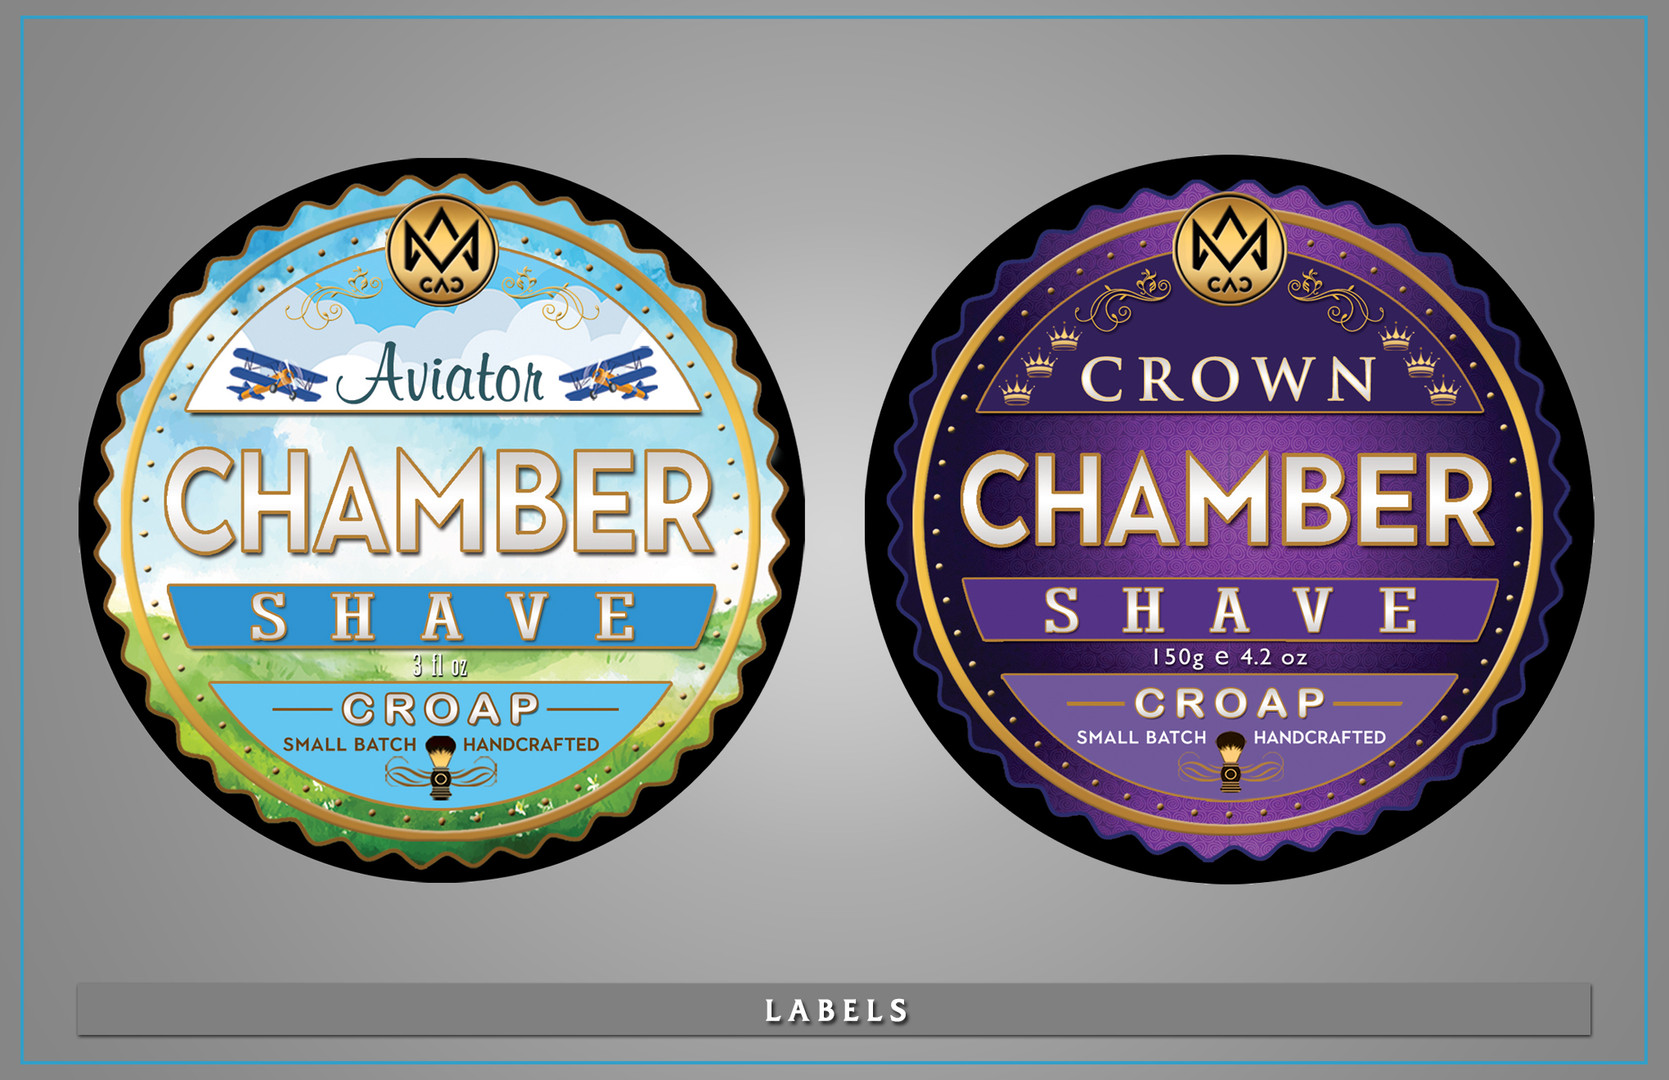 AVIATOR_CROWN_LABELS.jpg